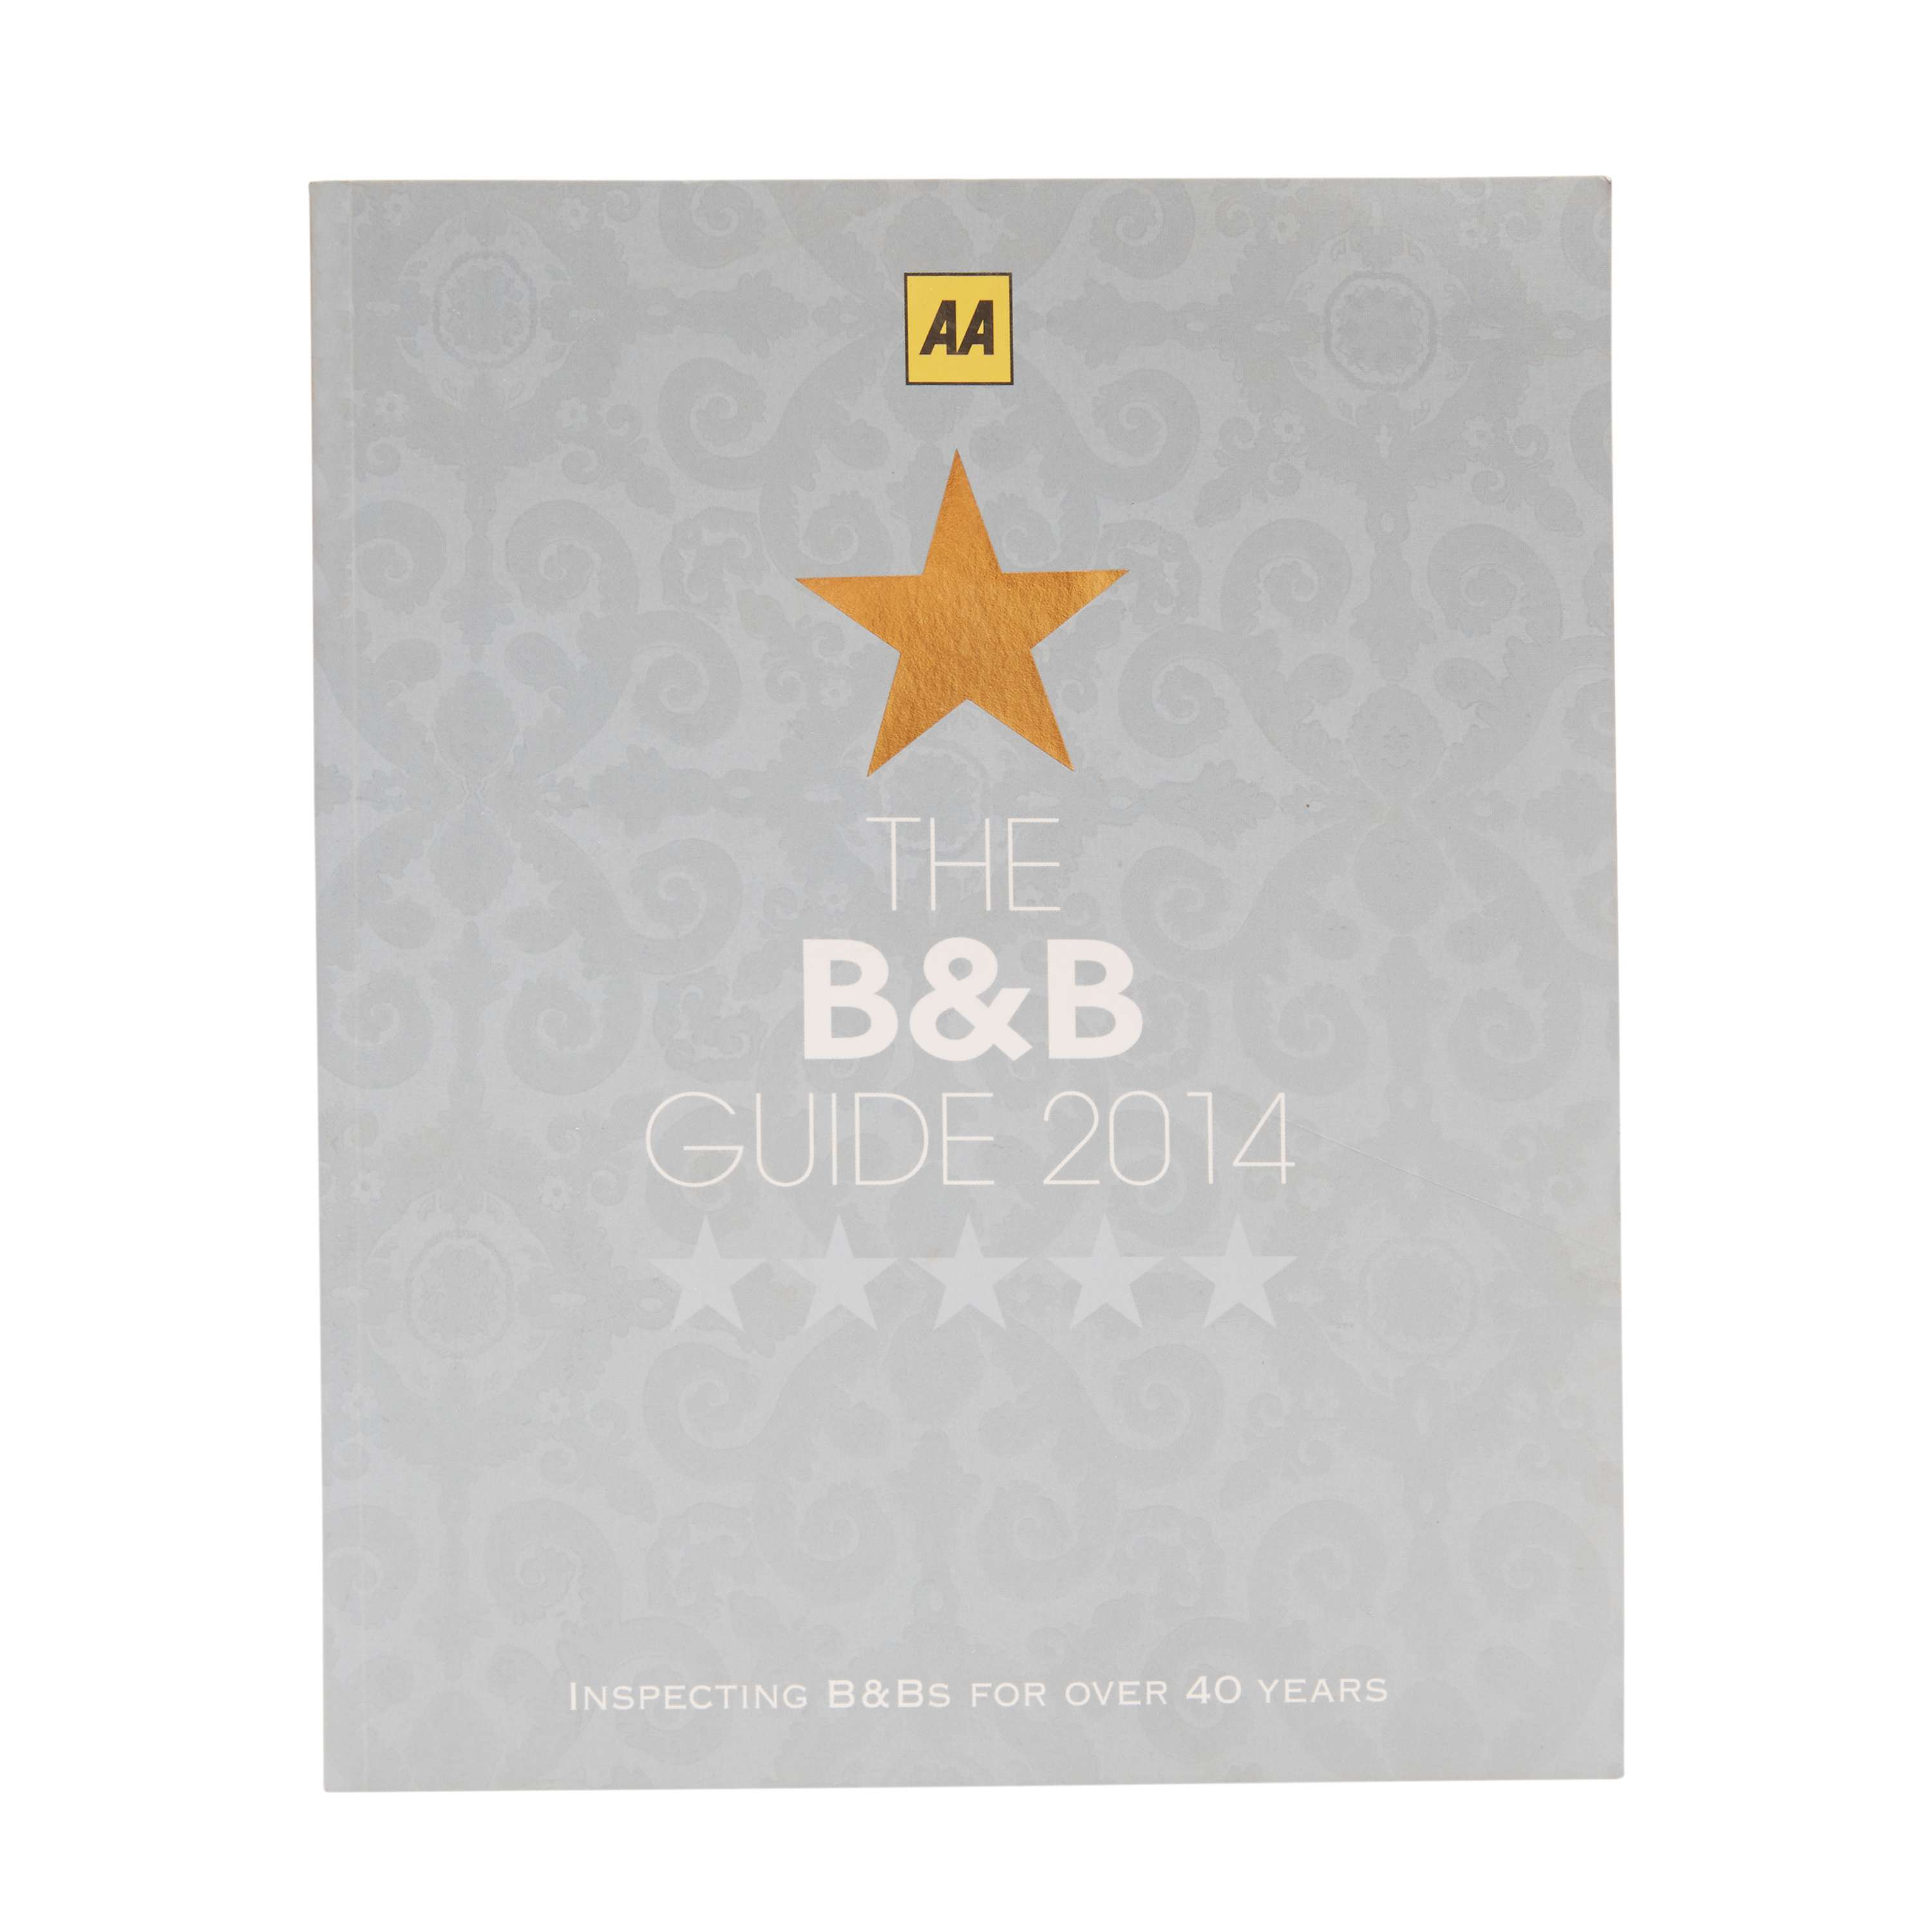 AA Bed & Breakfast Guide 2014